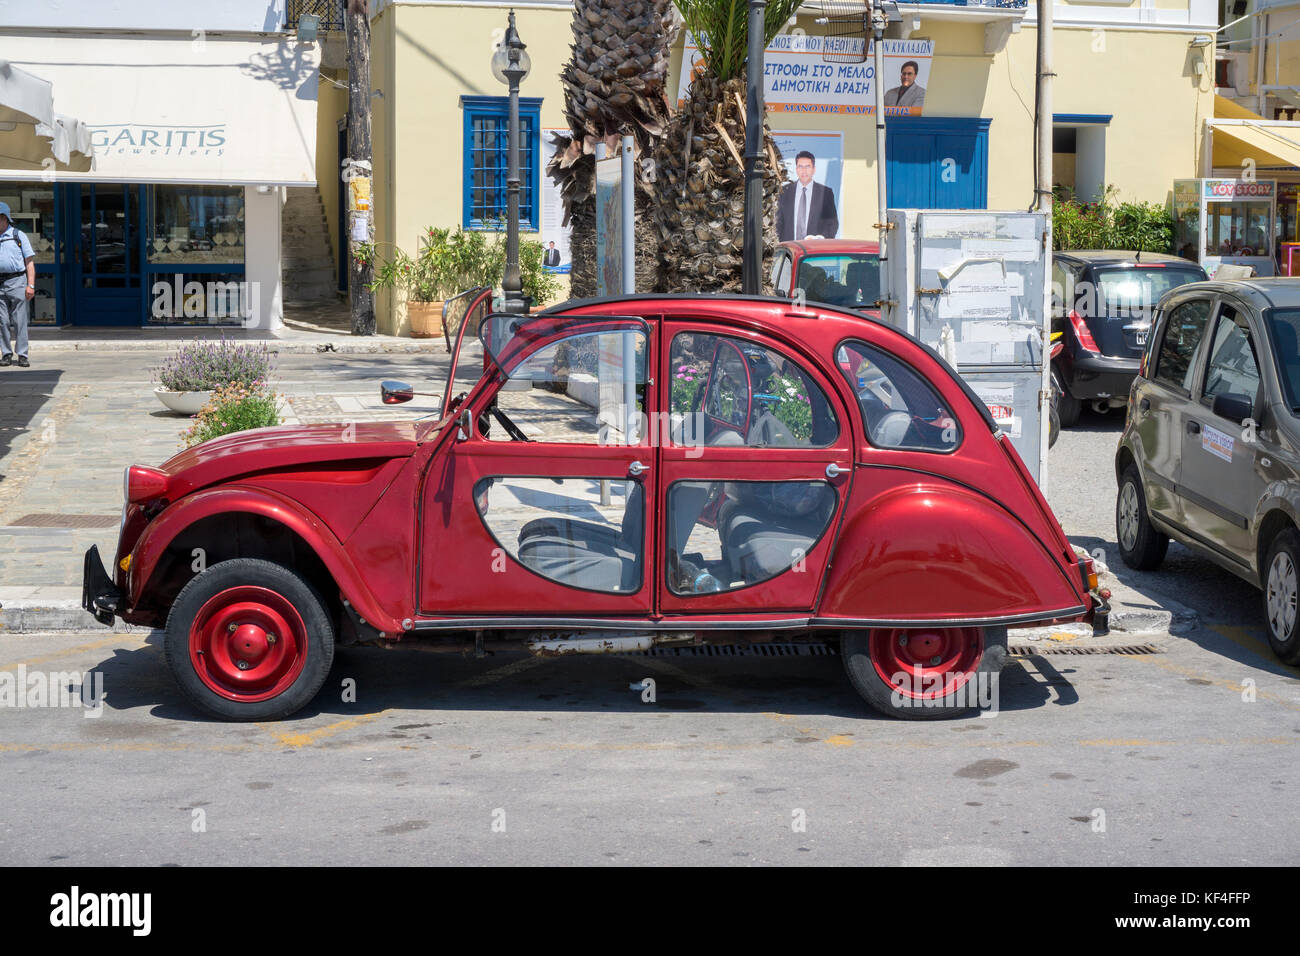 Citroen 2CV, french car at the harbour of Naxos-town, Naxos, Cyclades, Aegean, Greece - Stock Image